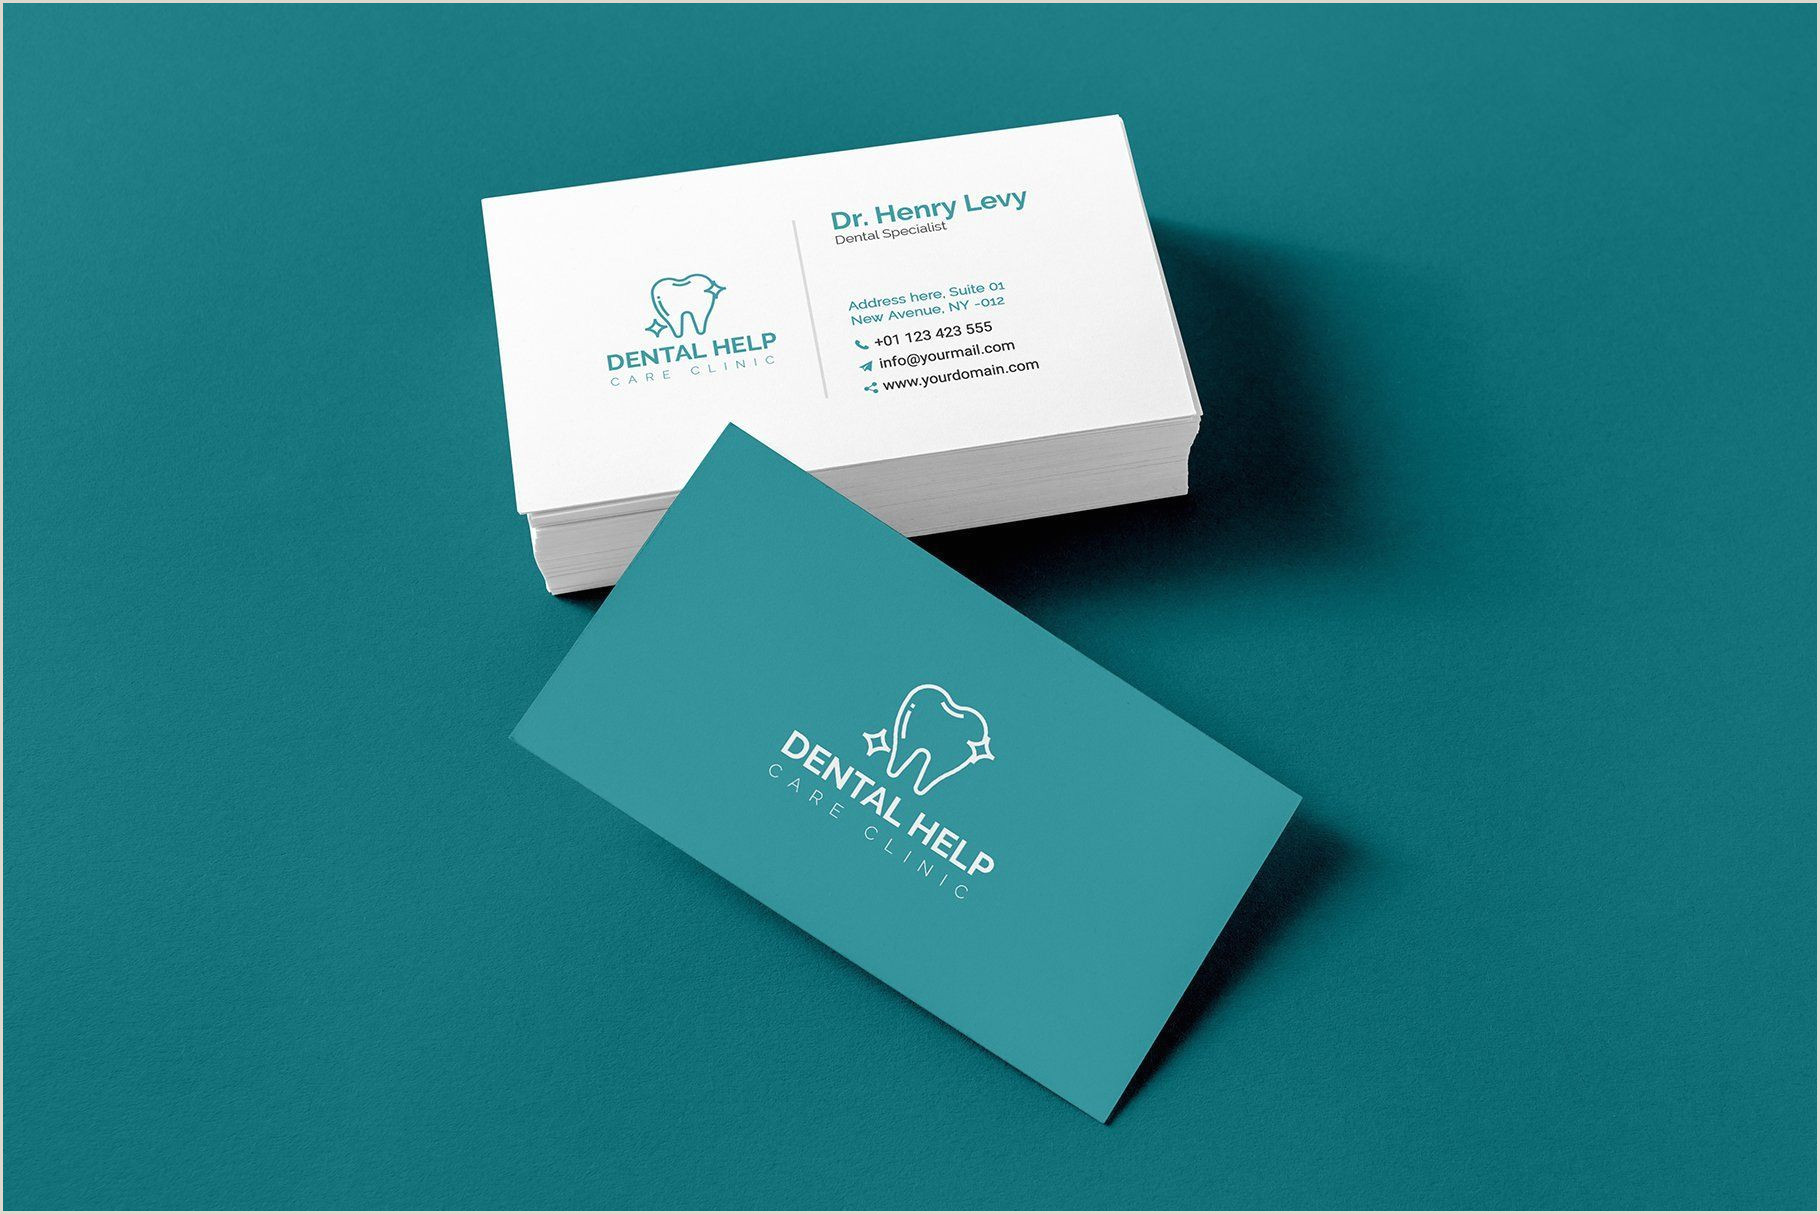 Personal Business Card Examples Dentist Business Card Templates In 2020